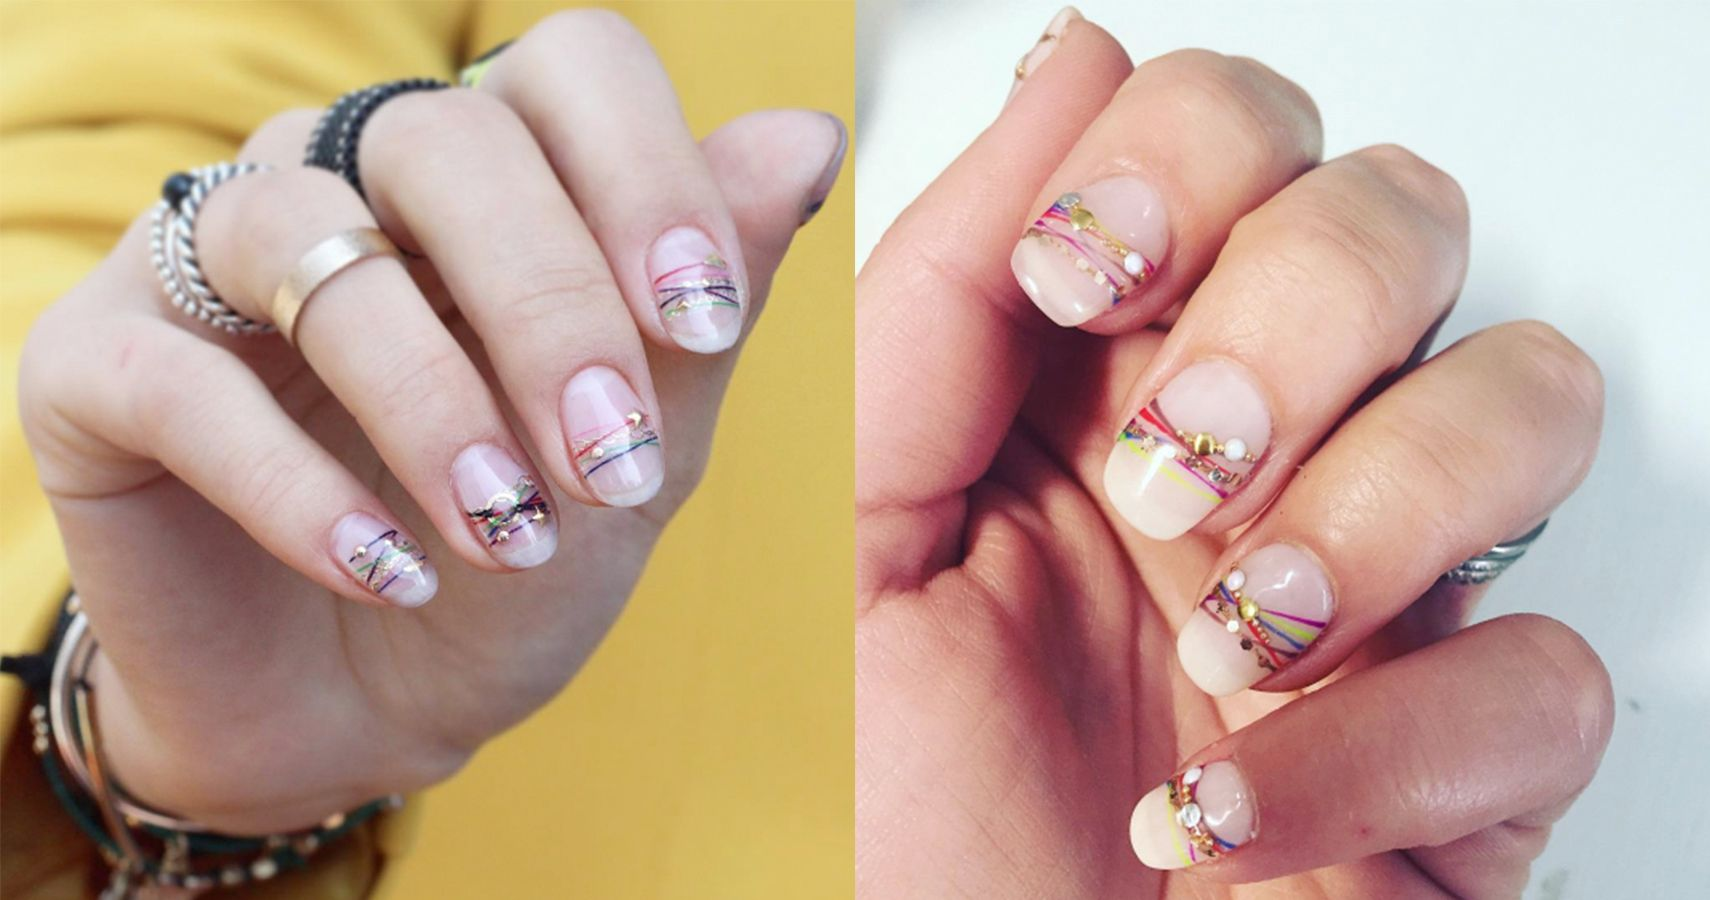 10 Photos That'll Make You Want To Try Bracelet Nails